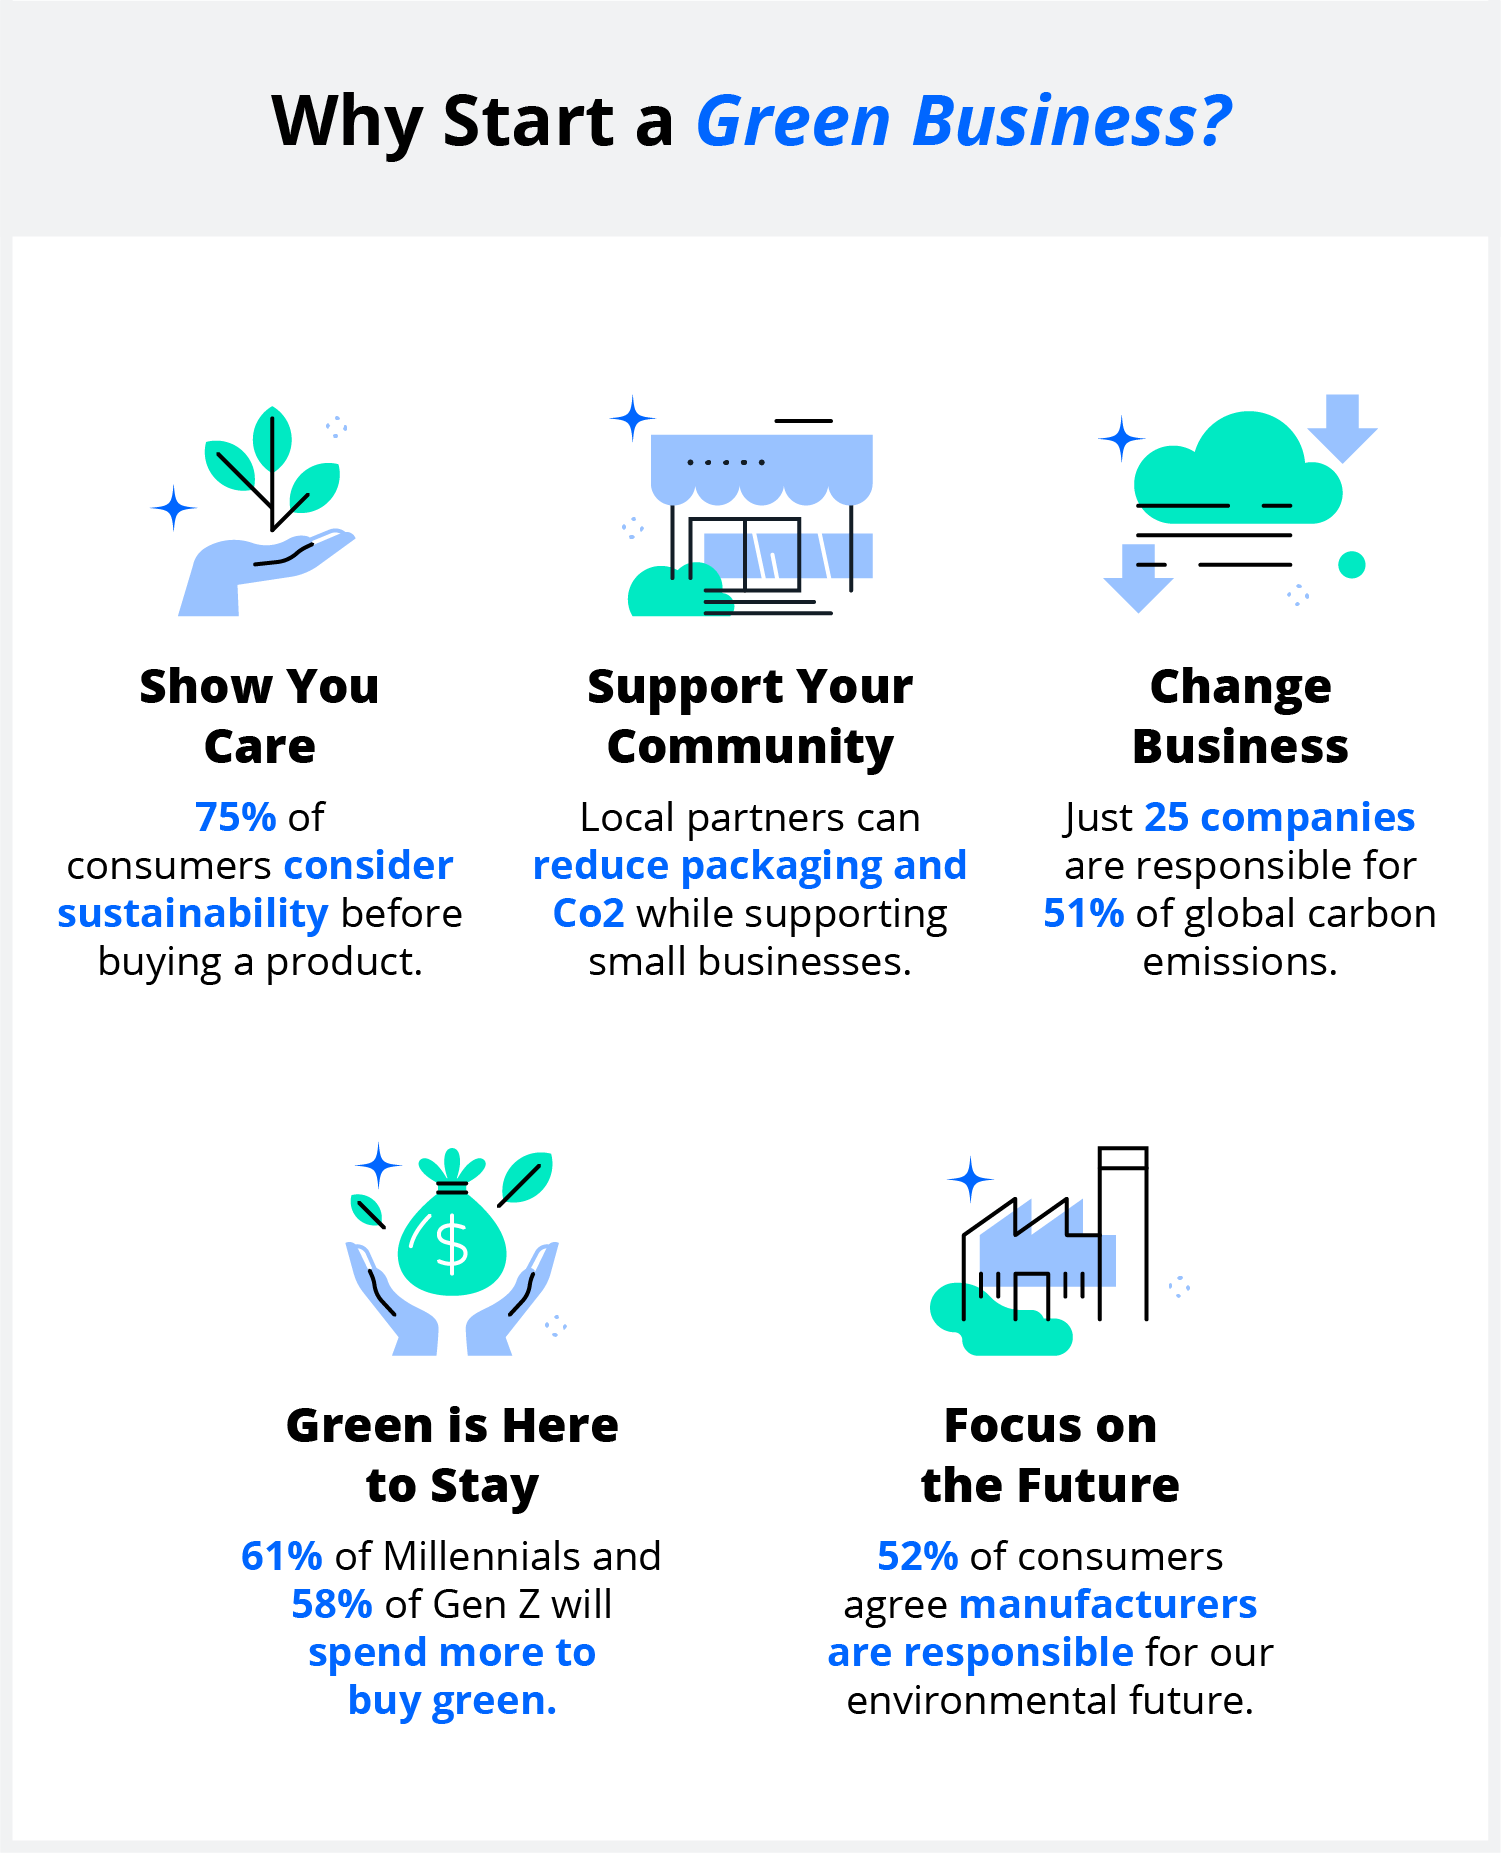 first steps in starting a green business infographic